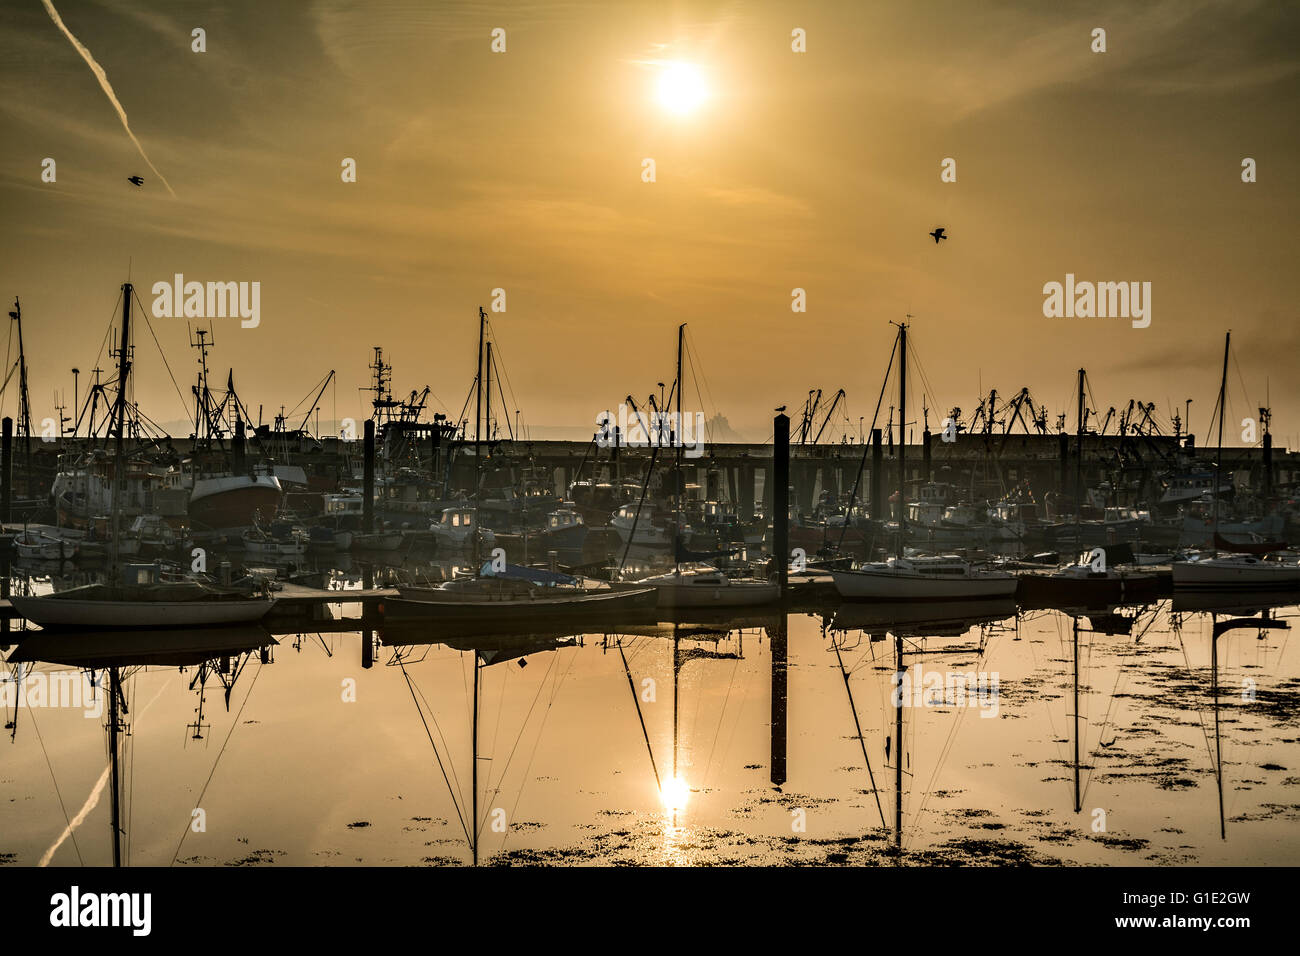 Newlyn, Cornwall, UK. 13th May 2016. UK Weather. After a week of mist the sun finally shines over Newlyn Harbour. Stock Photo